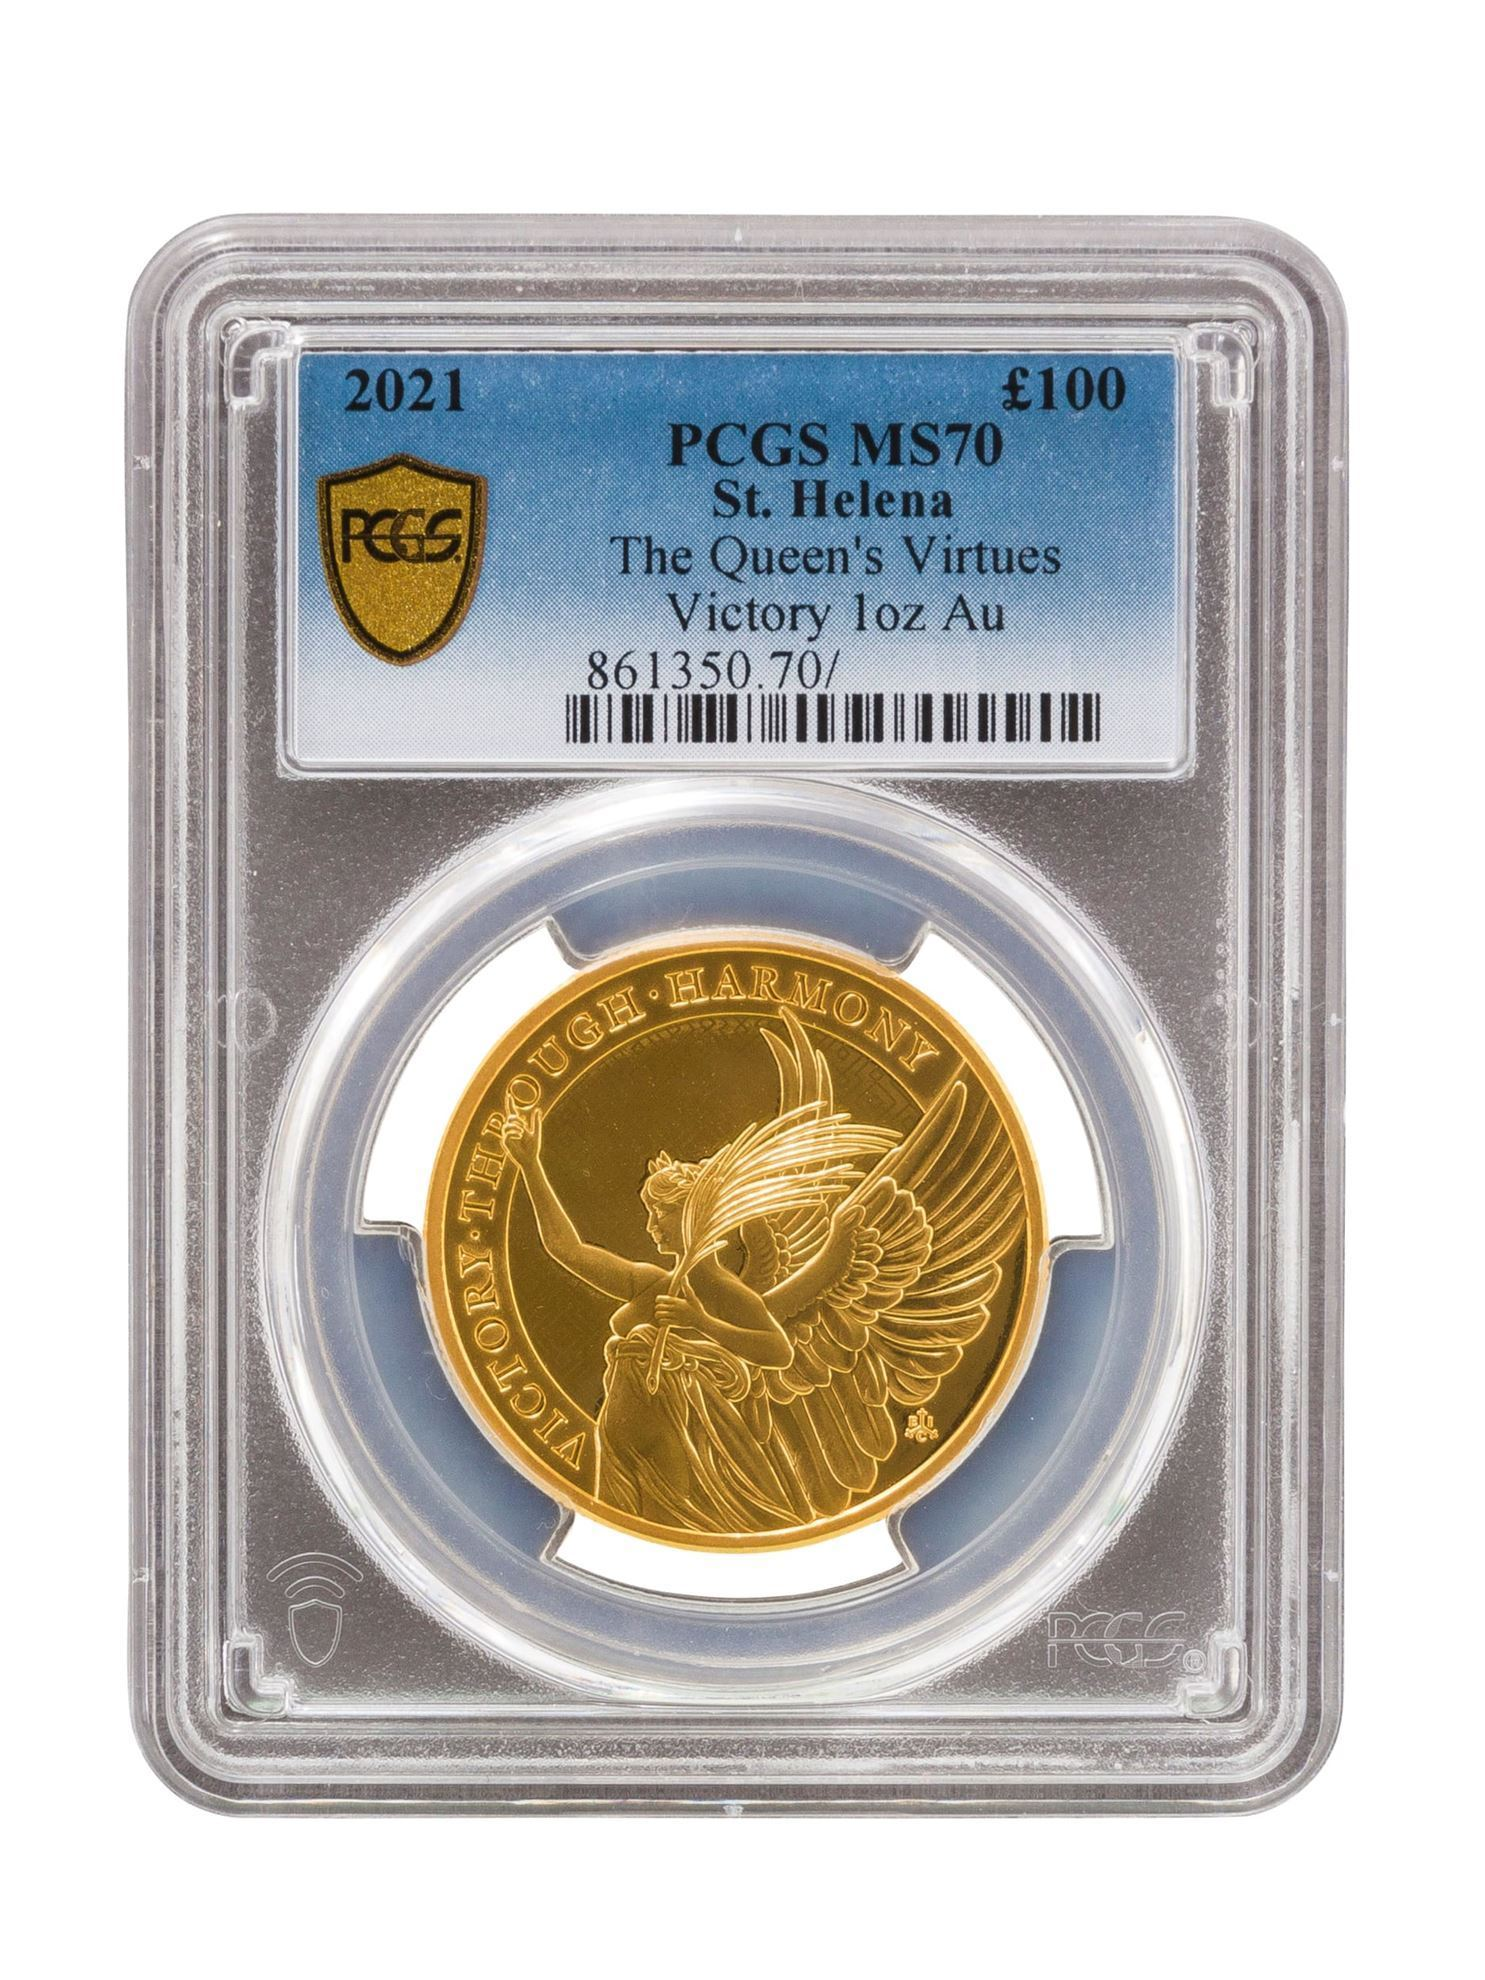 Picture of PCGS 2021 1oz 24k Gold UK Queen's Virtue 'Victory' MS70